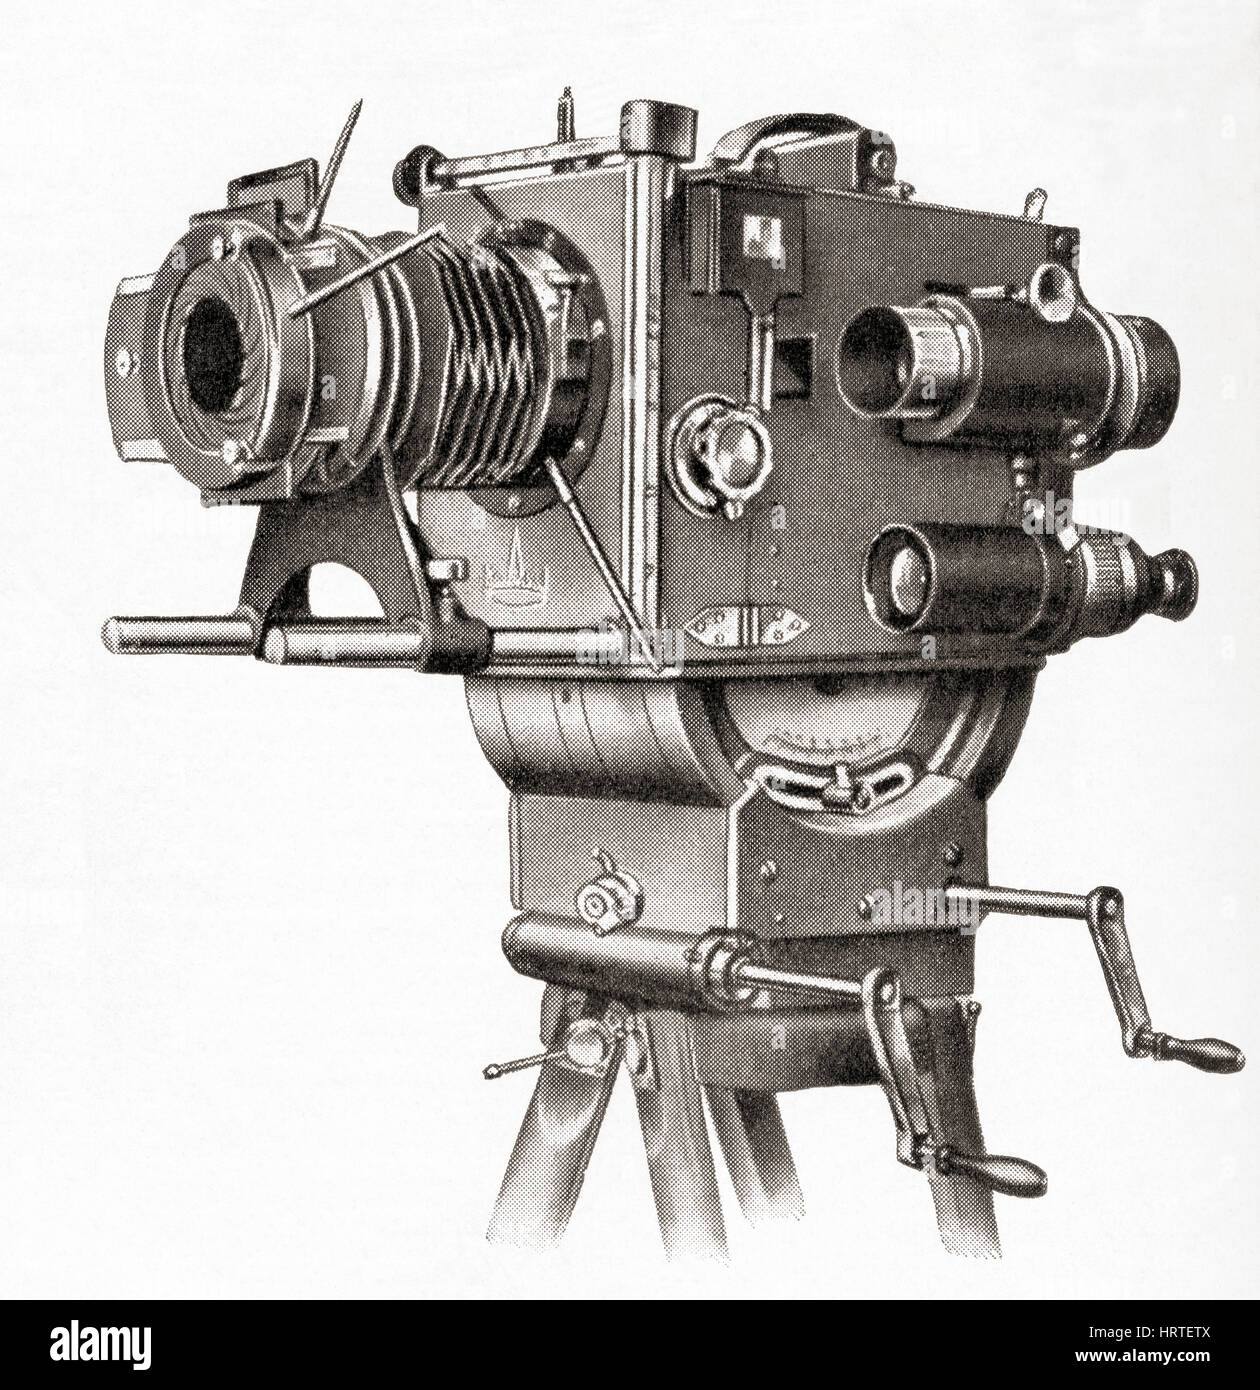 A professional movie camera made at Askania Werke, Berlin, Germany.   From Meyers Lexicon, published 1927. - Stock Image